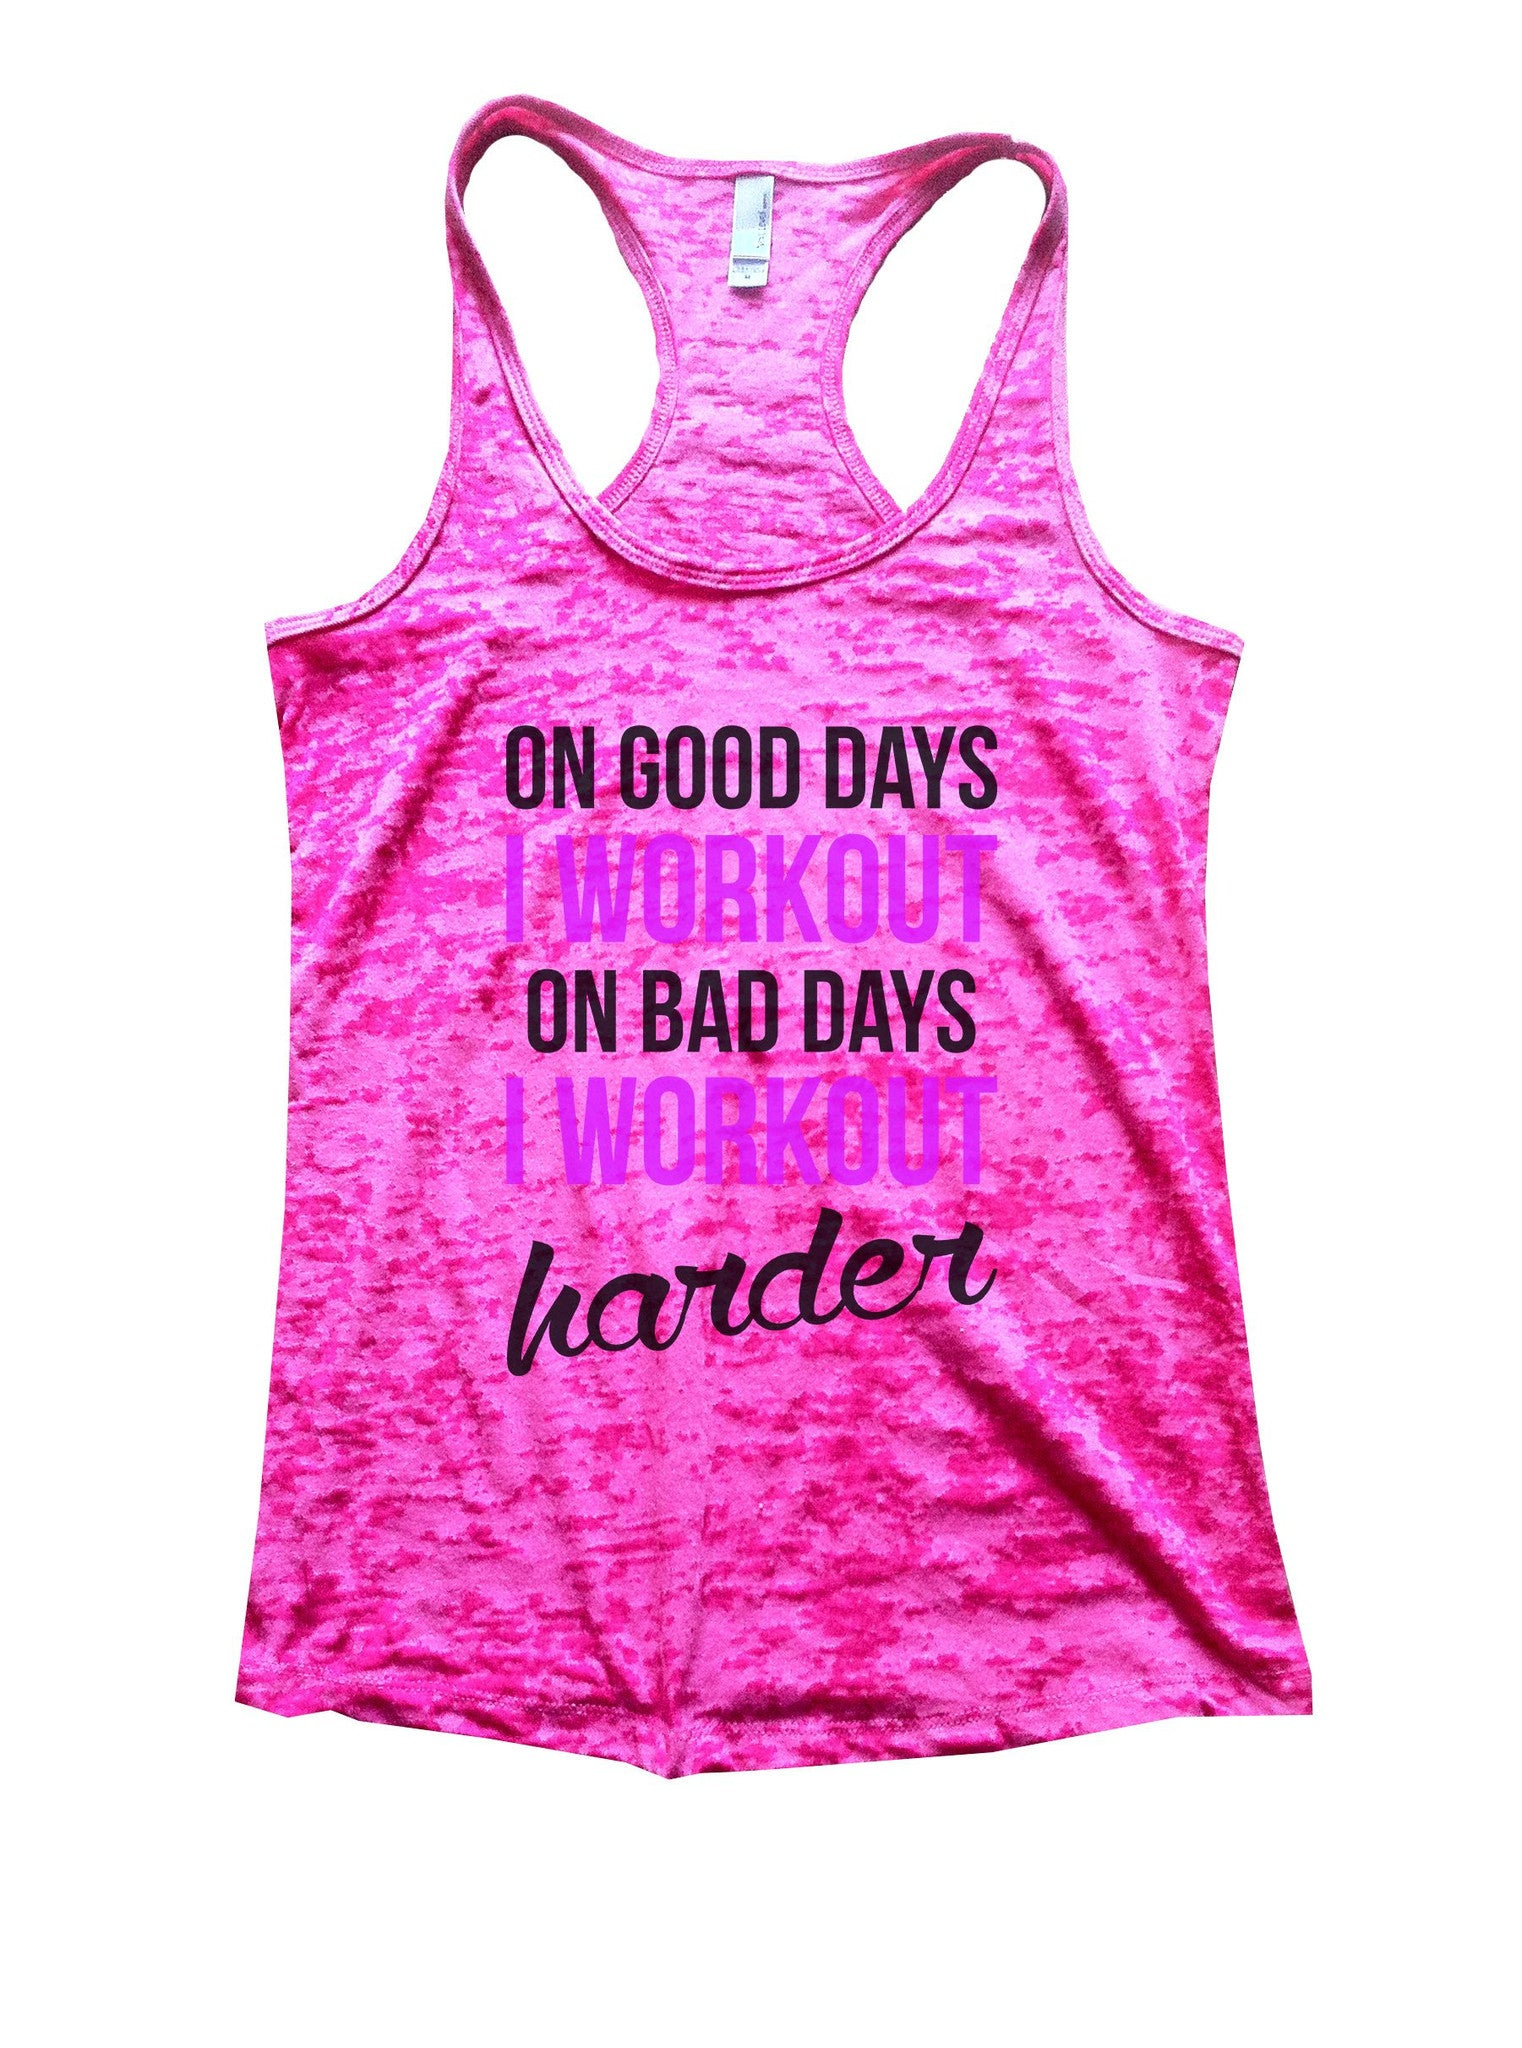 On Good Days I Workout On Bad Days I Workout Harder Burnout Tank Top By BurnoutTankTops.com - 850 - Funny Shirts Tank Tops Burnouts and Triblends  - 5